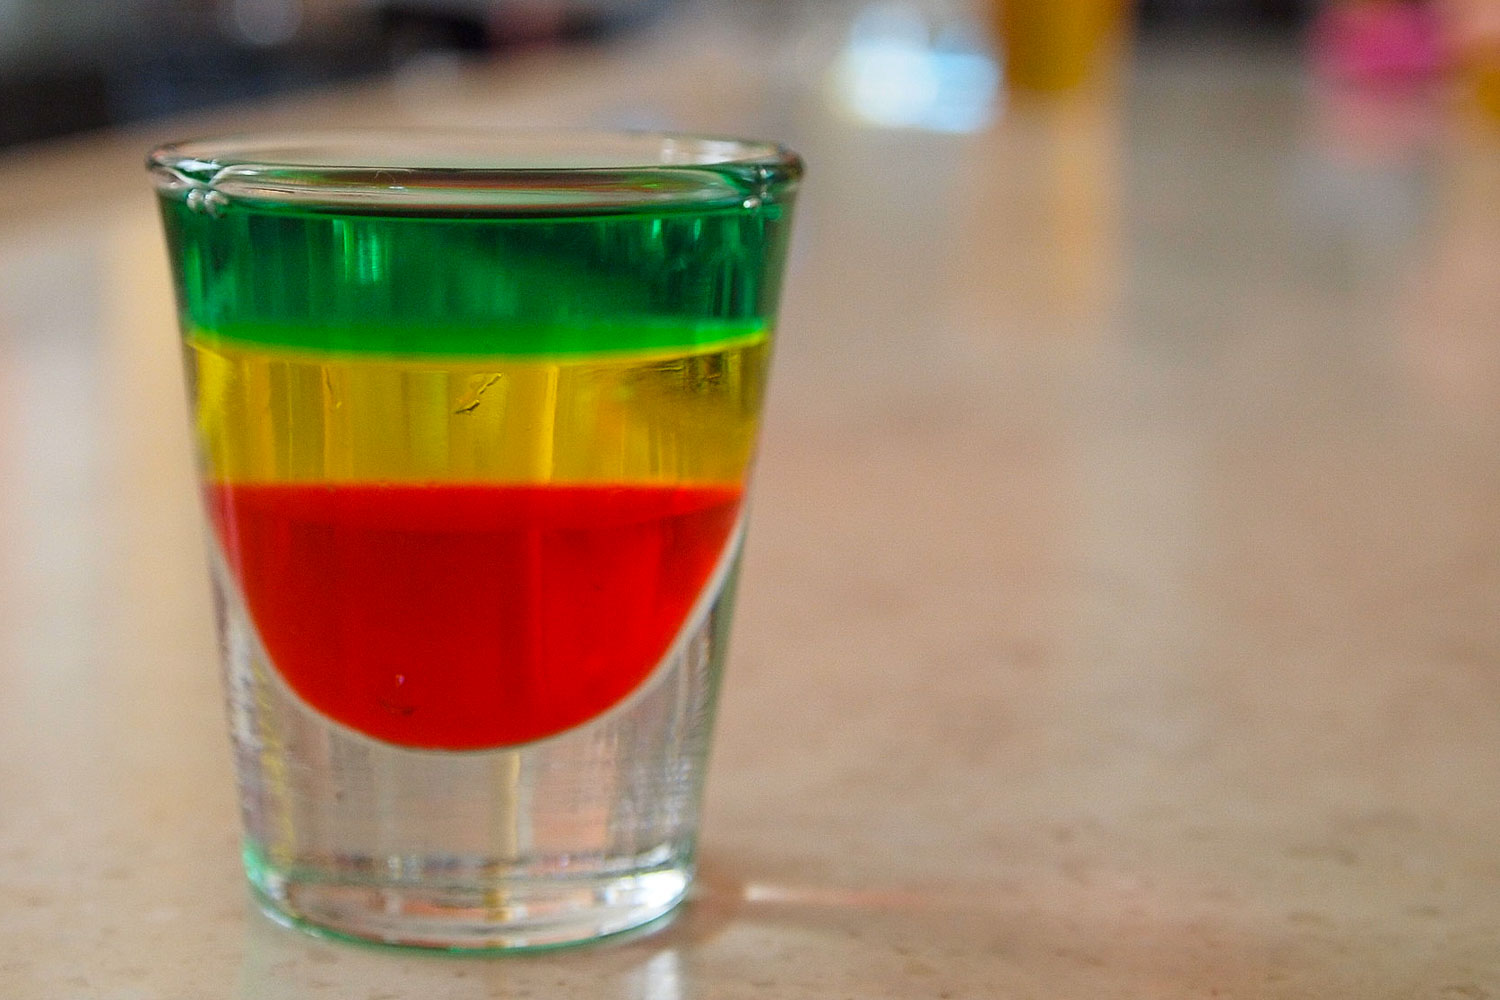 Jamaican cocktail called the Bob Marley shot, which is red, yellow and green on a bar.